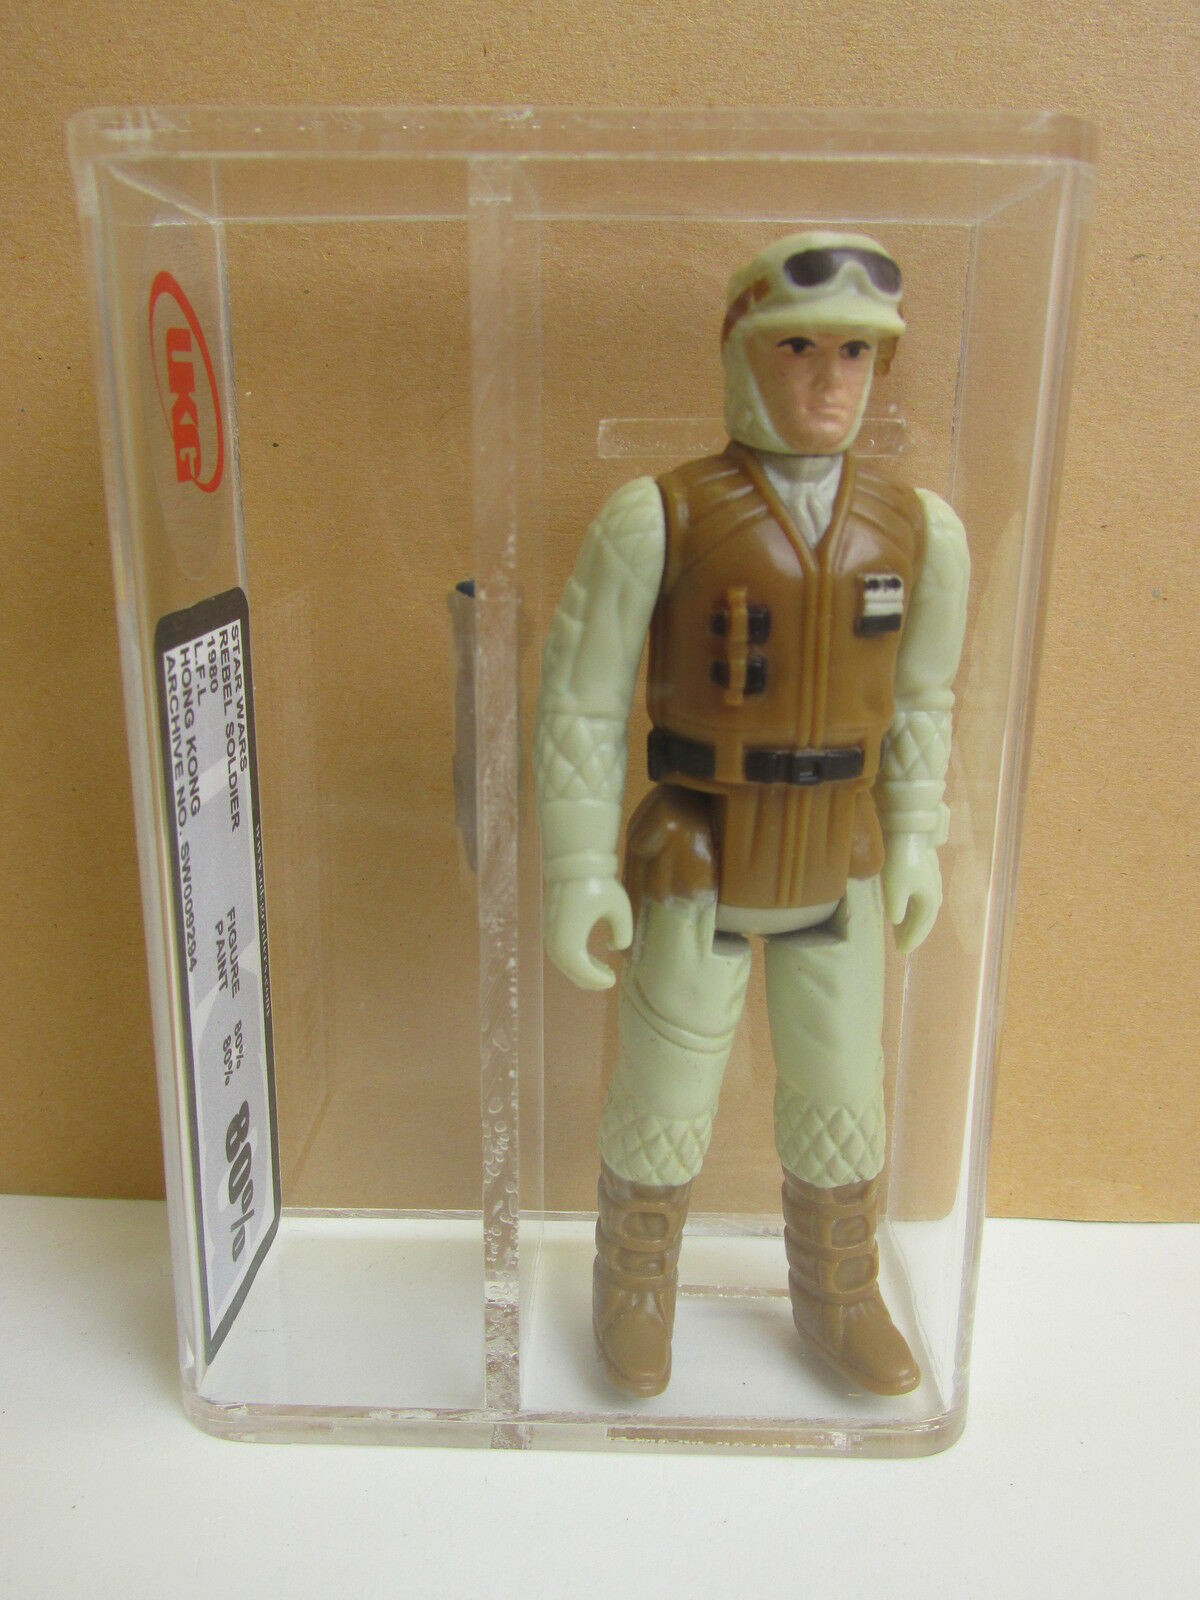 Star wars VINTAGE hoth REBEL SOLDIER ACTION FIGURE original UKG not AFA ESB